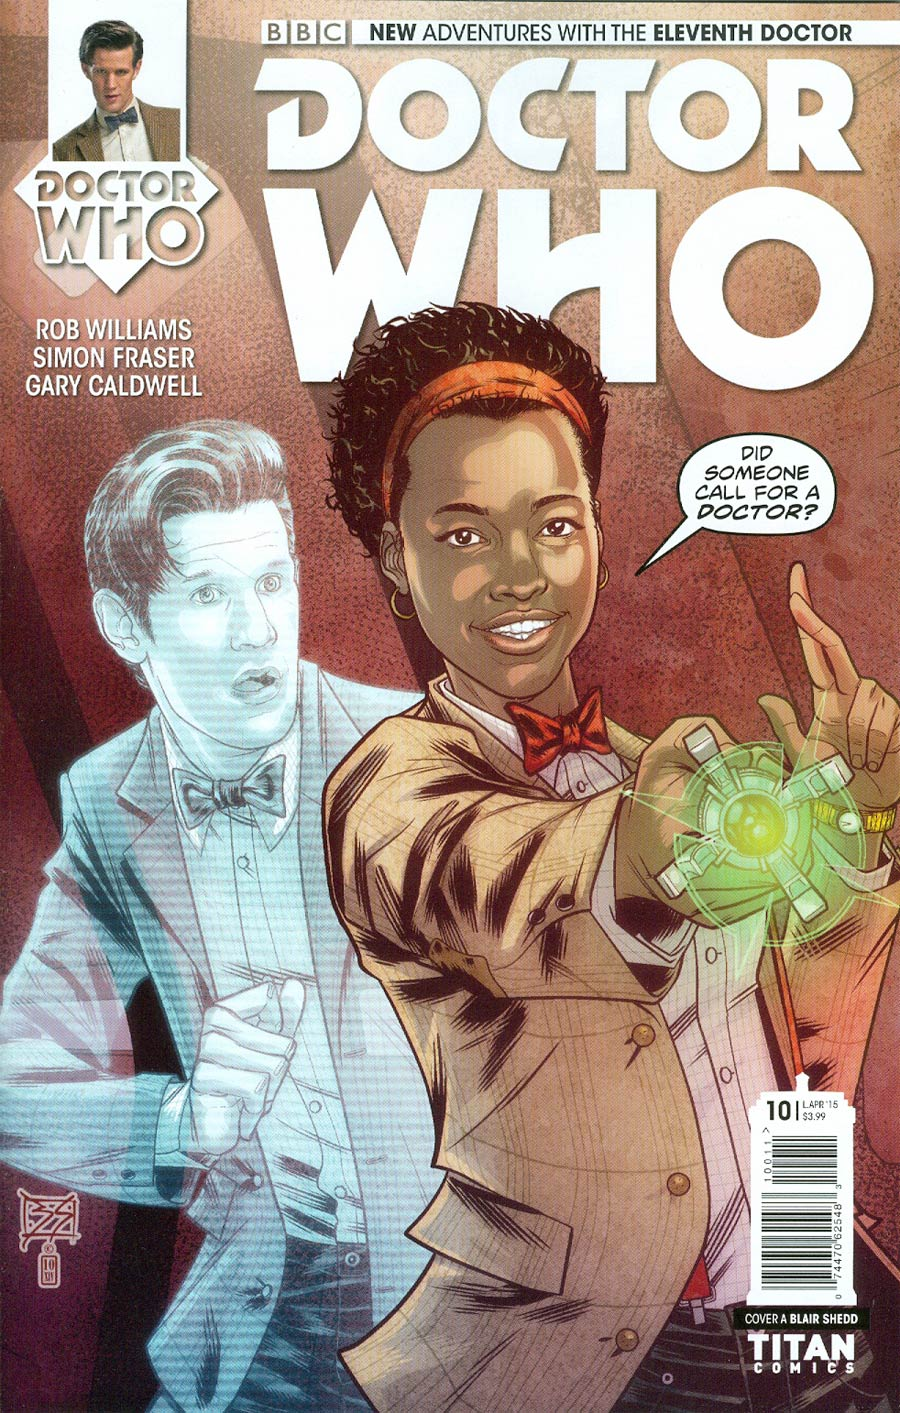 Doctor Who 11th Doctor #10 Cover A Regular Blair Shedd Cover